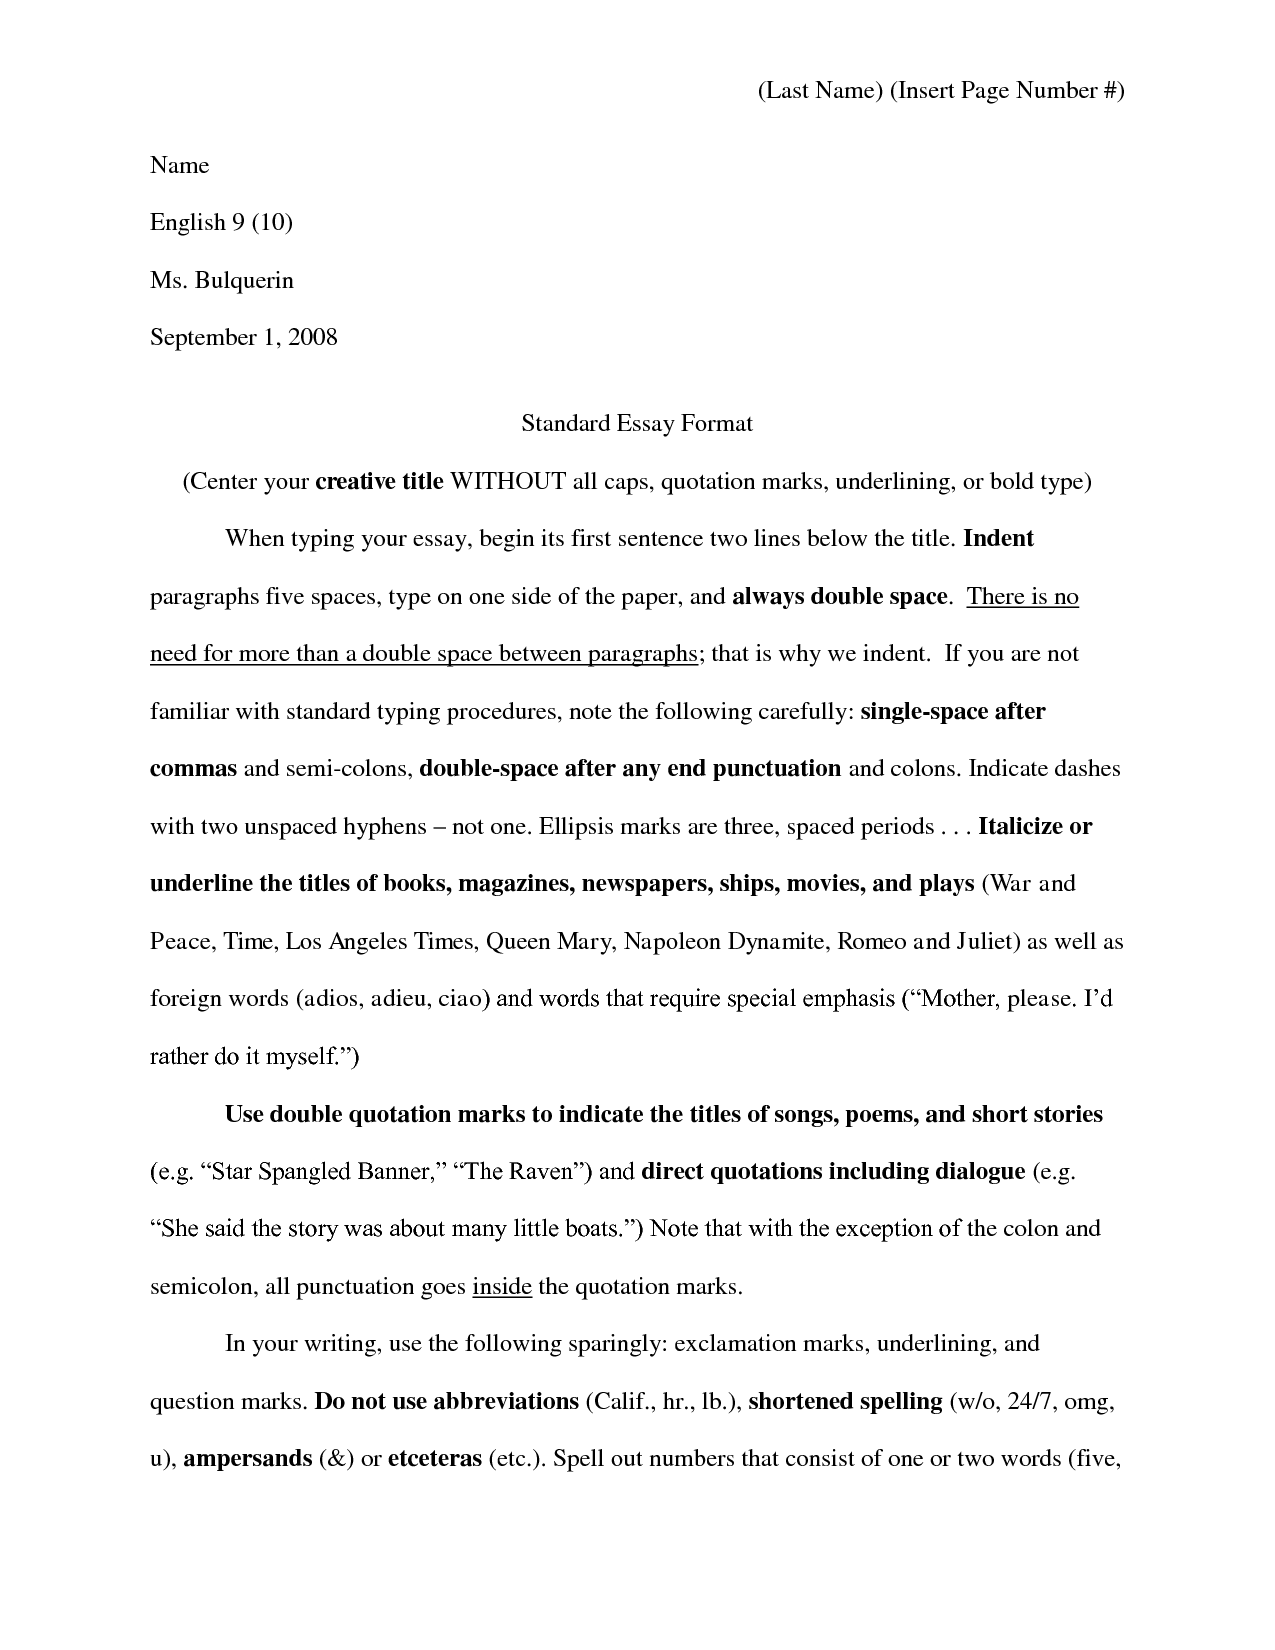 004 Standard Essay Format Example Impressive Apa Essay/report Writing For Ielts Full